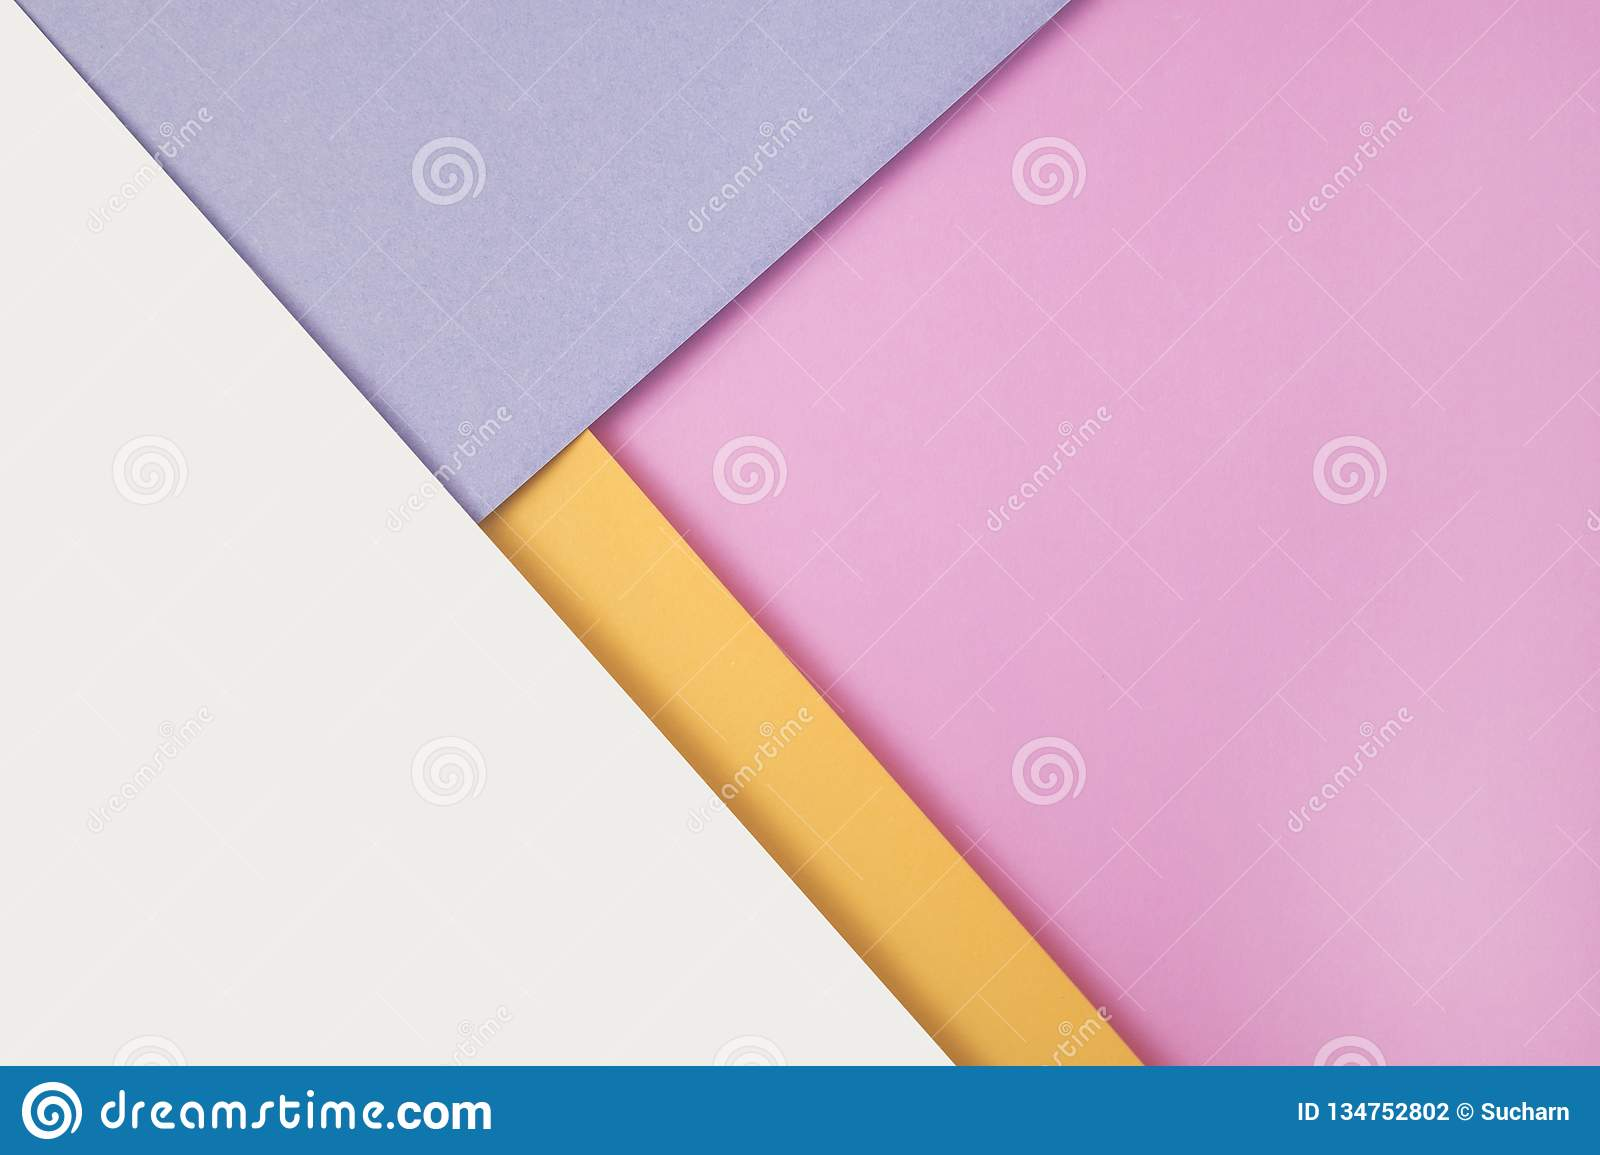 Background of shape and geometry. Colored background decorations with paper